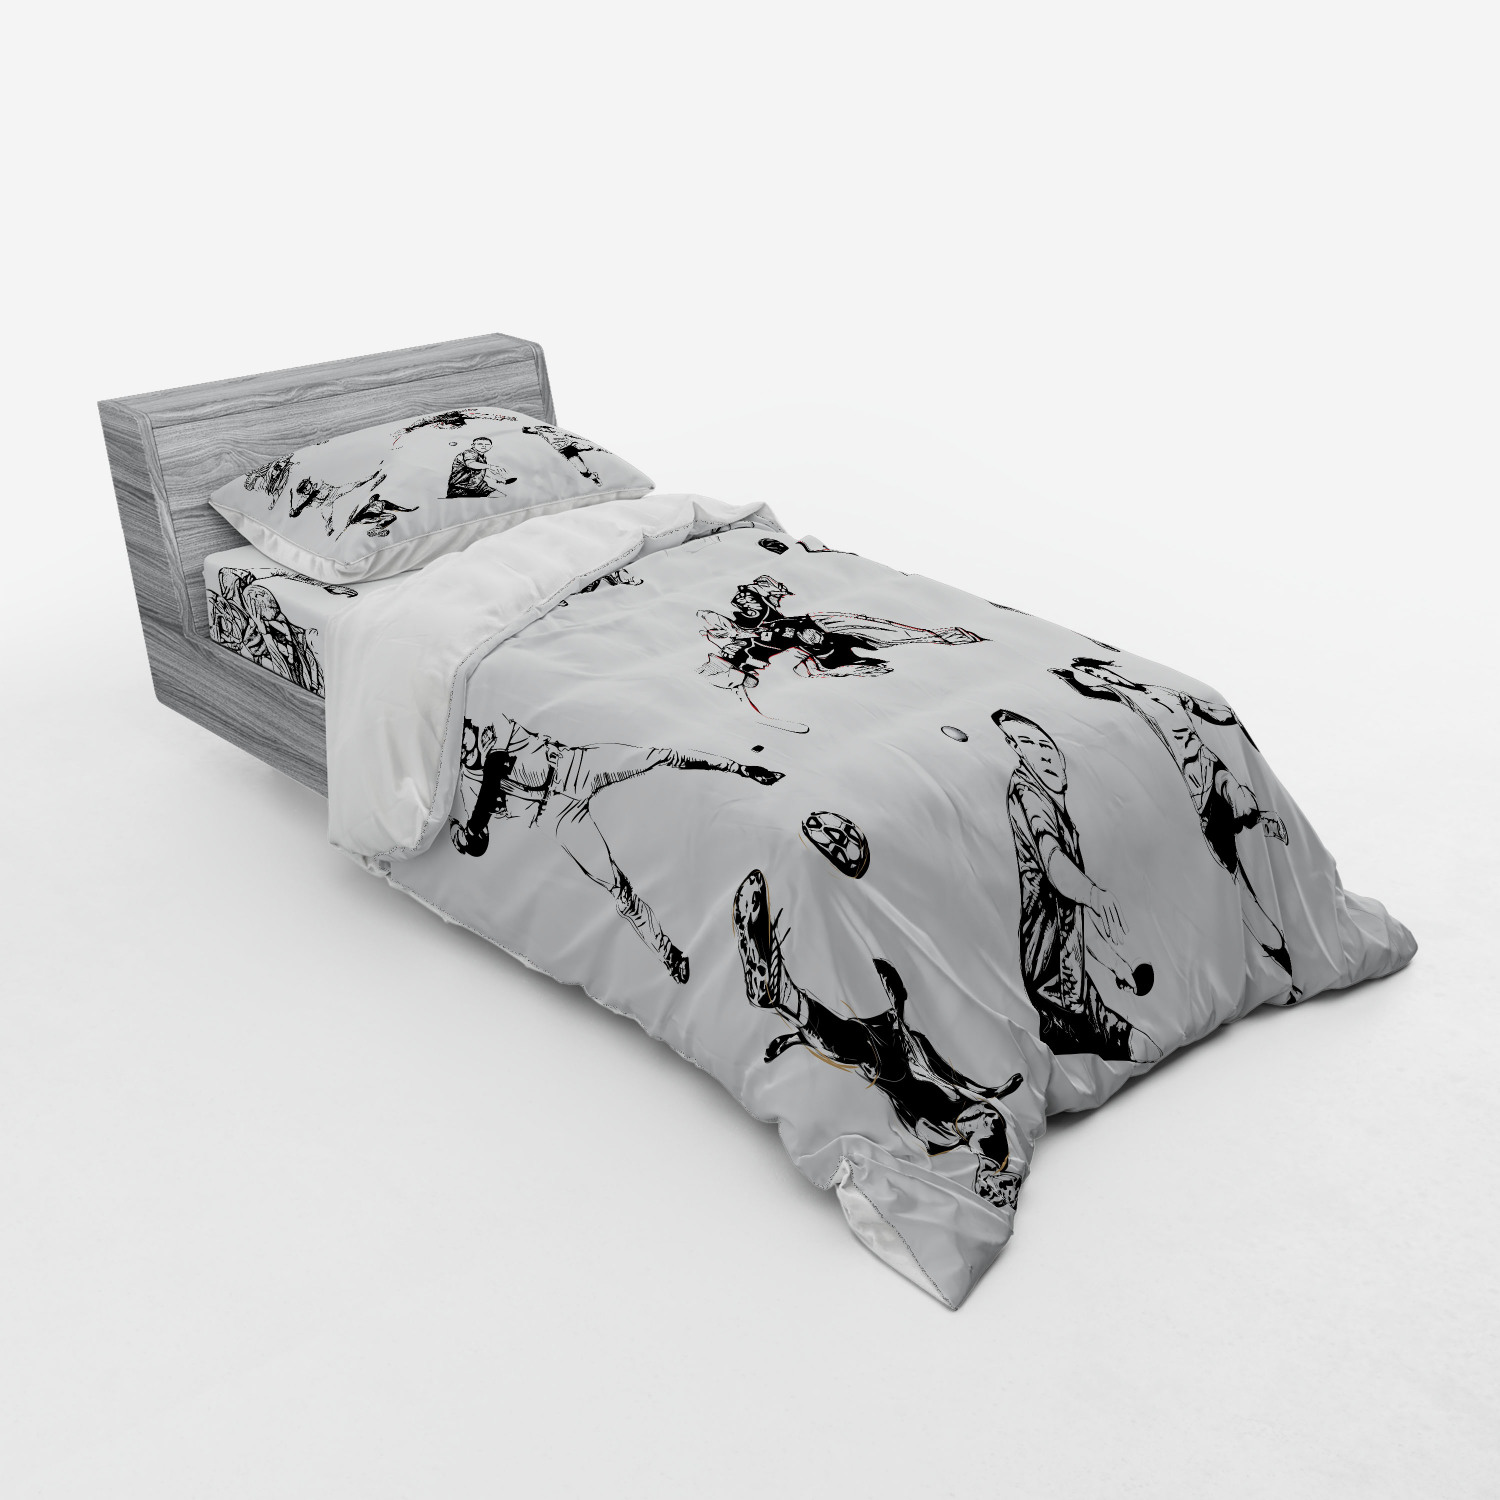 thumbnail 189 - Ambesonne Black White Art Bedding Set Duvet Cover Sham Fitted Sheet in 3 Sizes